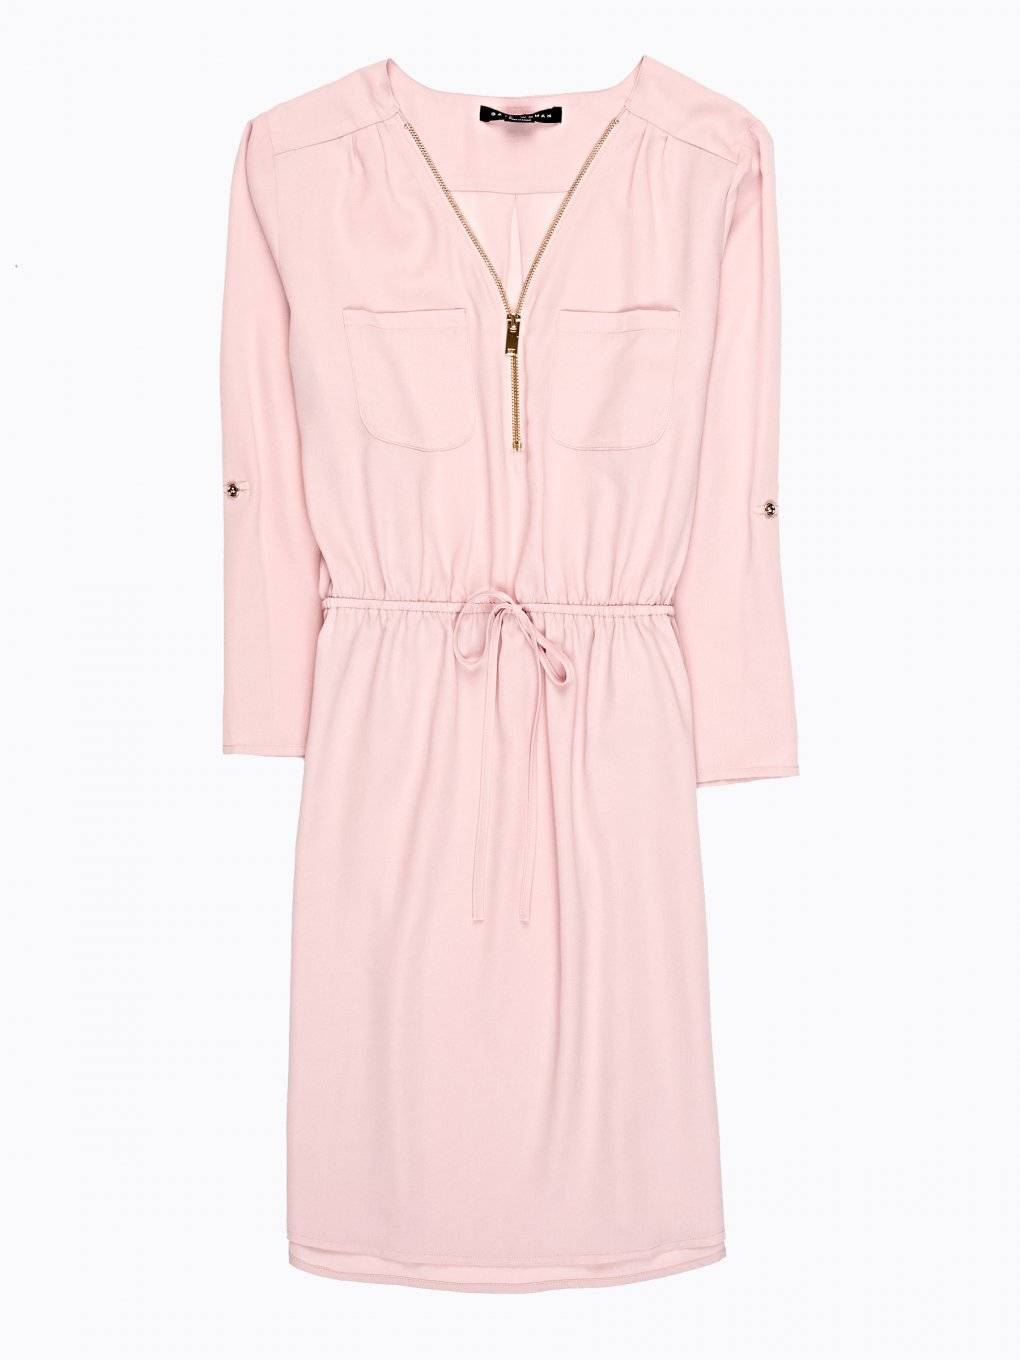 Basic shirt dress